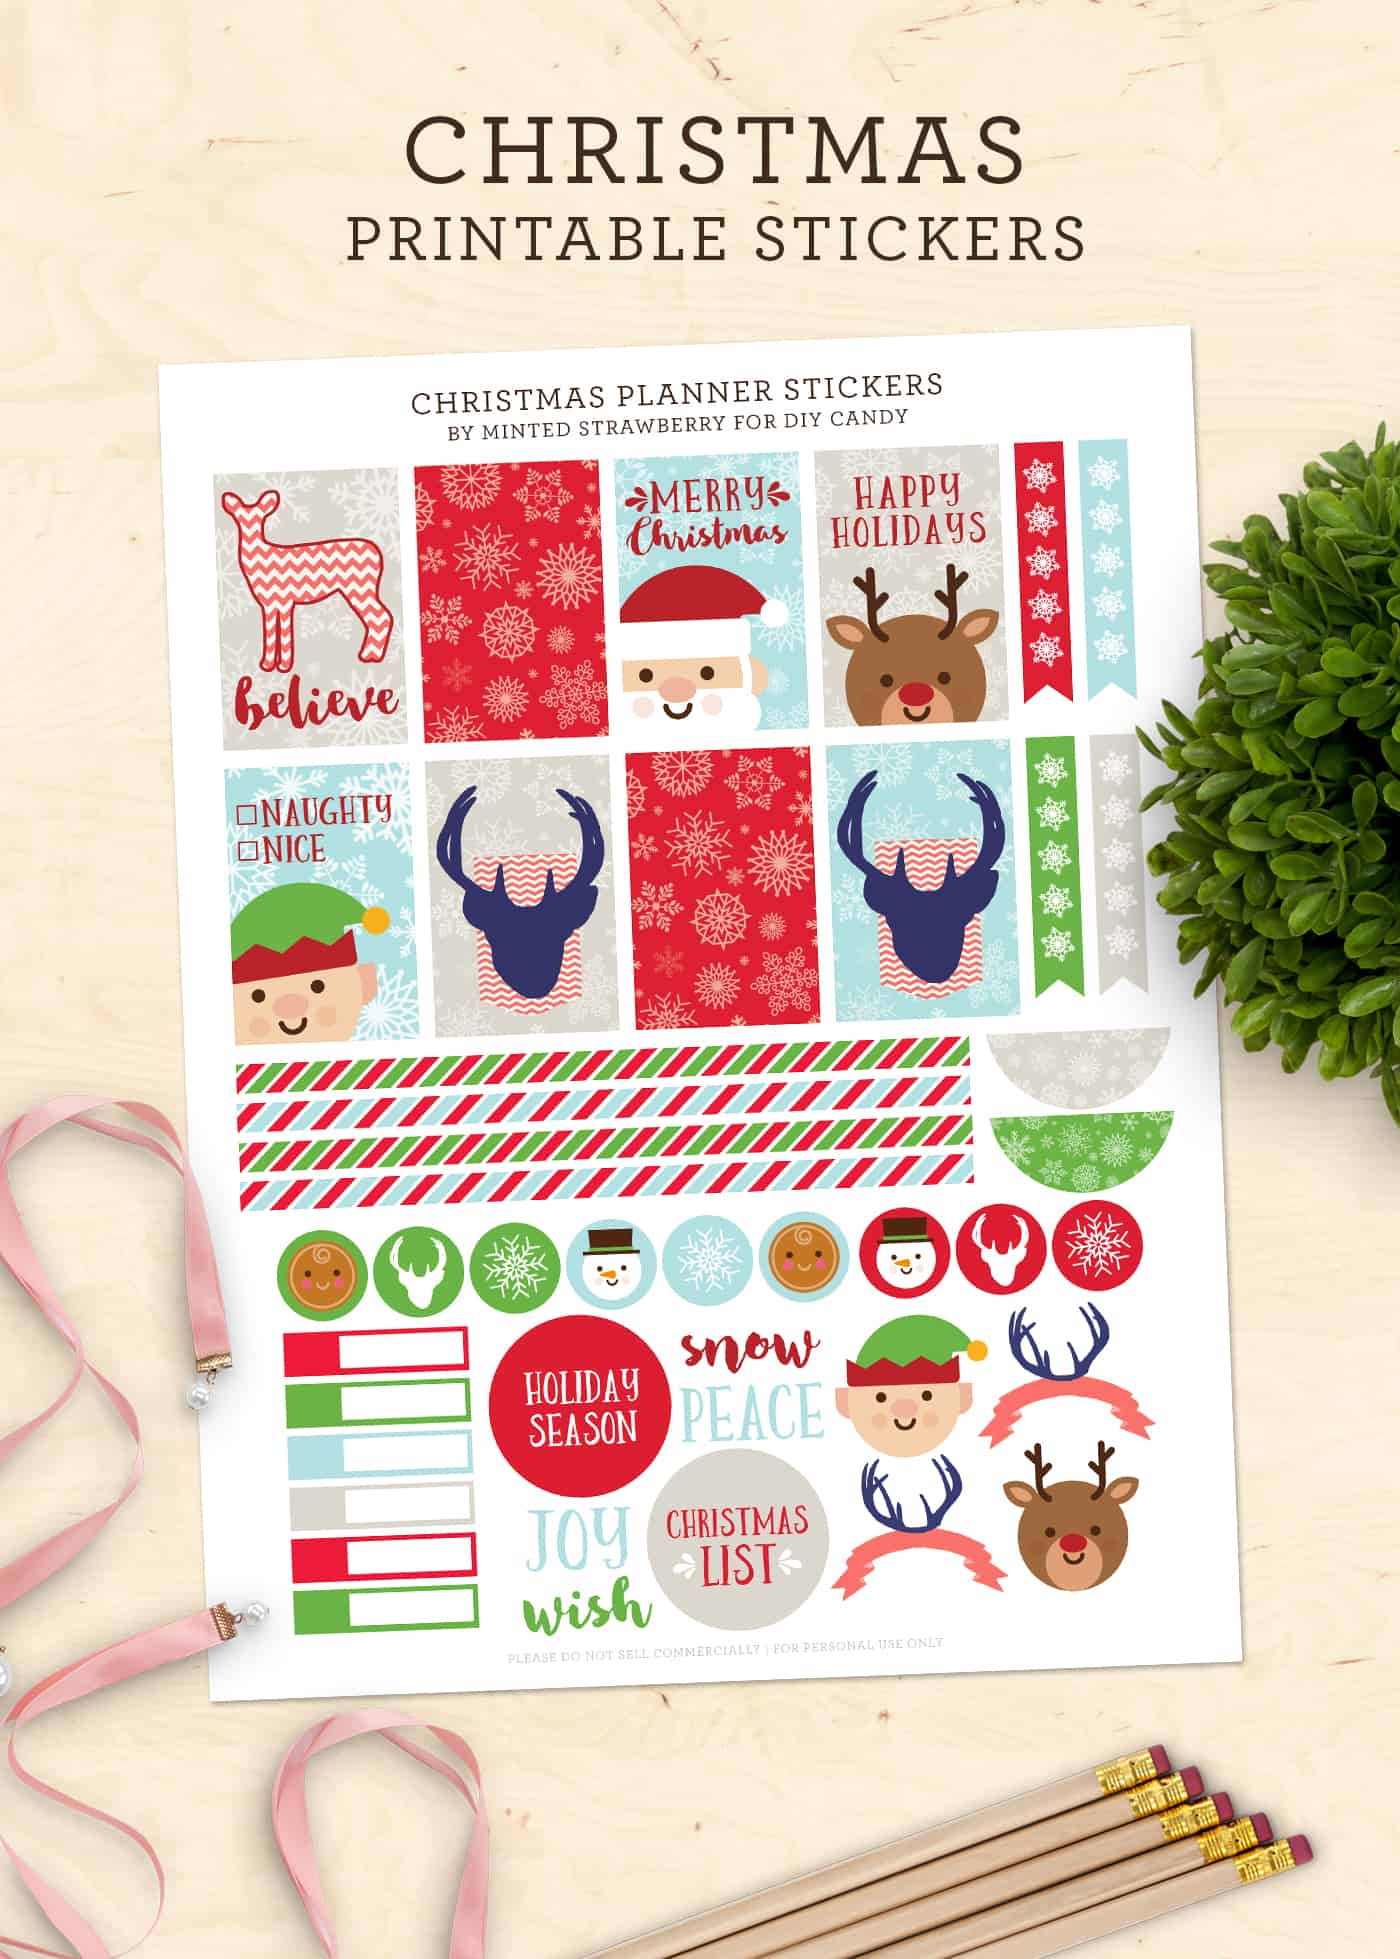 photograph regarding Printable Christmas Stickers titled Free of charge Xmas Stickers for Your Planner (Printable!) - Do-it-yourself